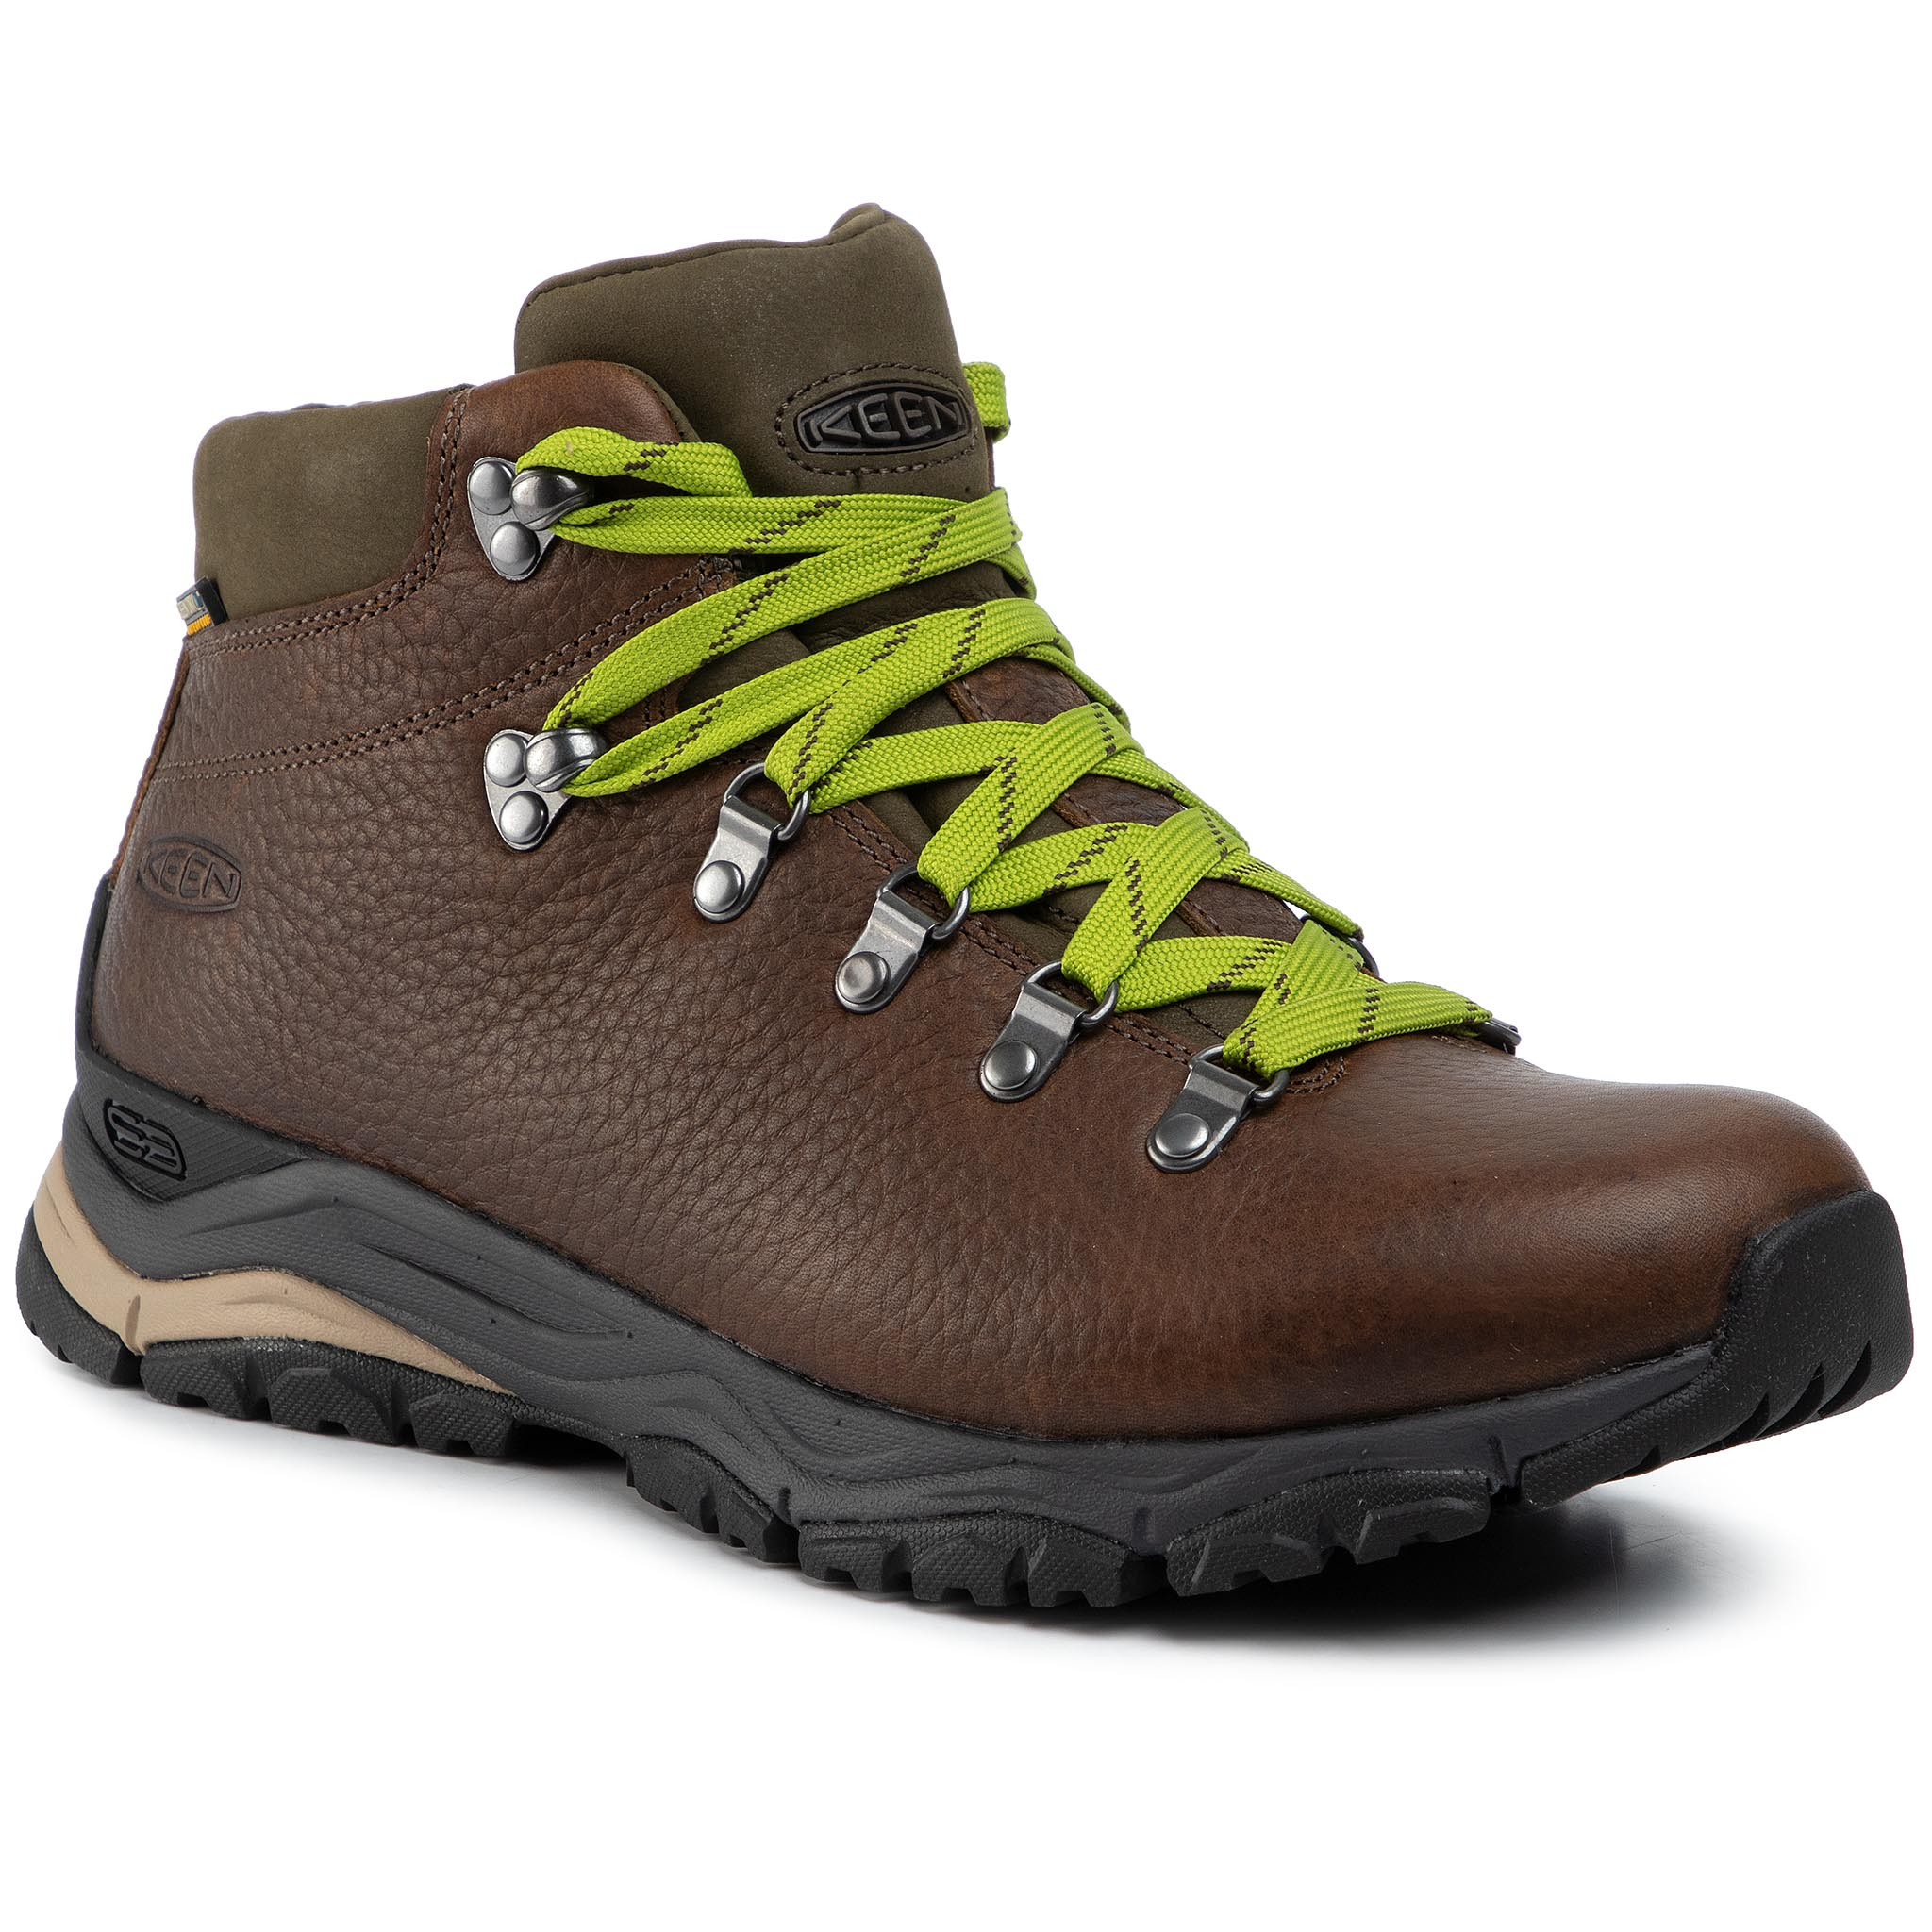 Trekkings Keen - Feldberg Apx Wp Limited 1021806 In The Wood Green imagine epantofi.ro 2021